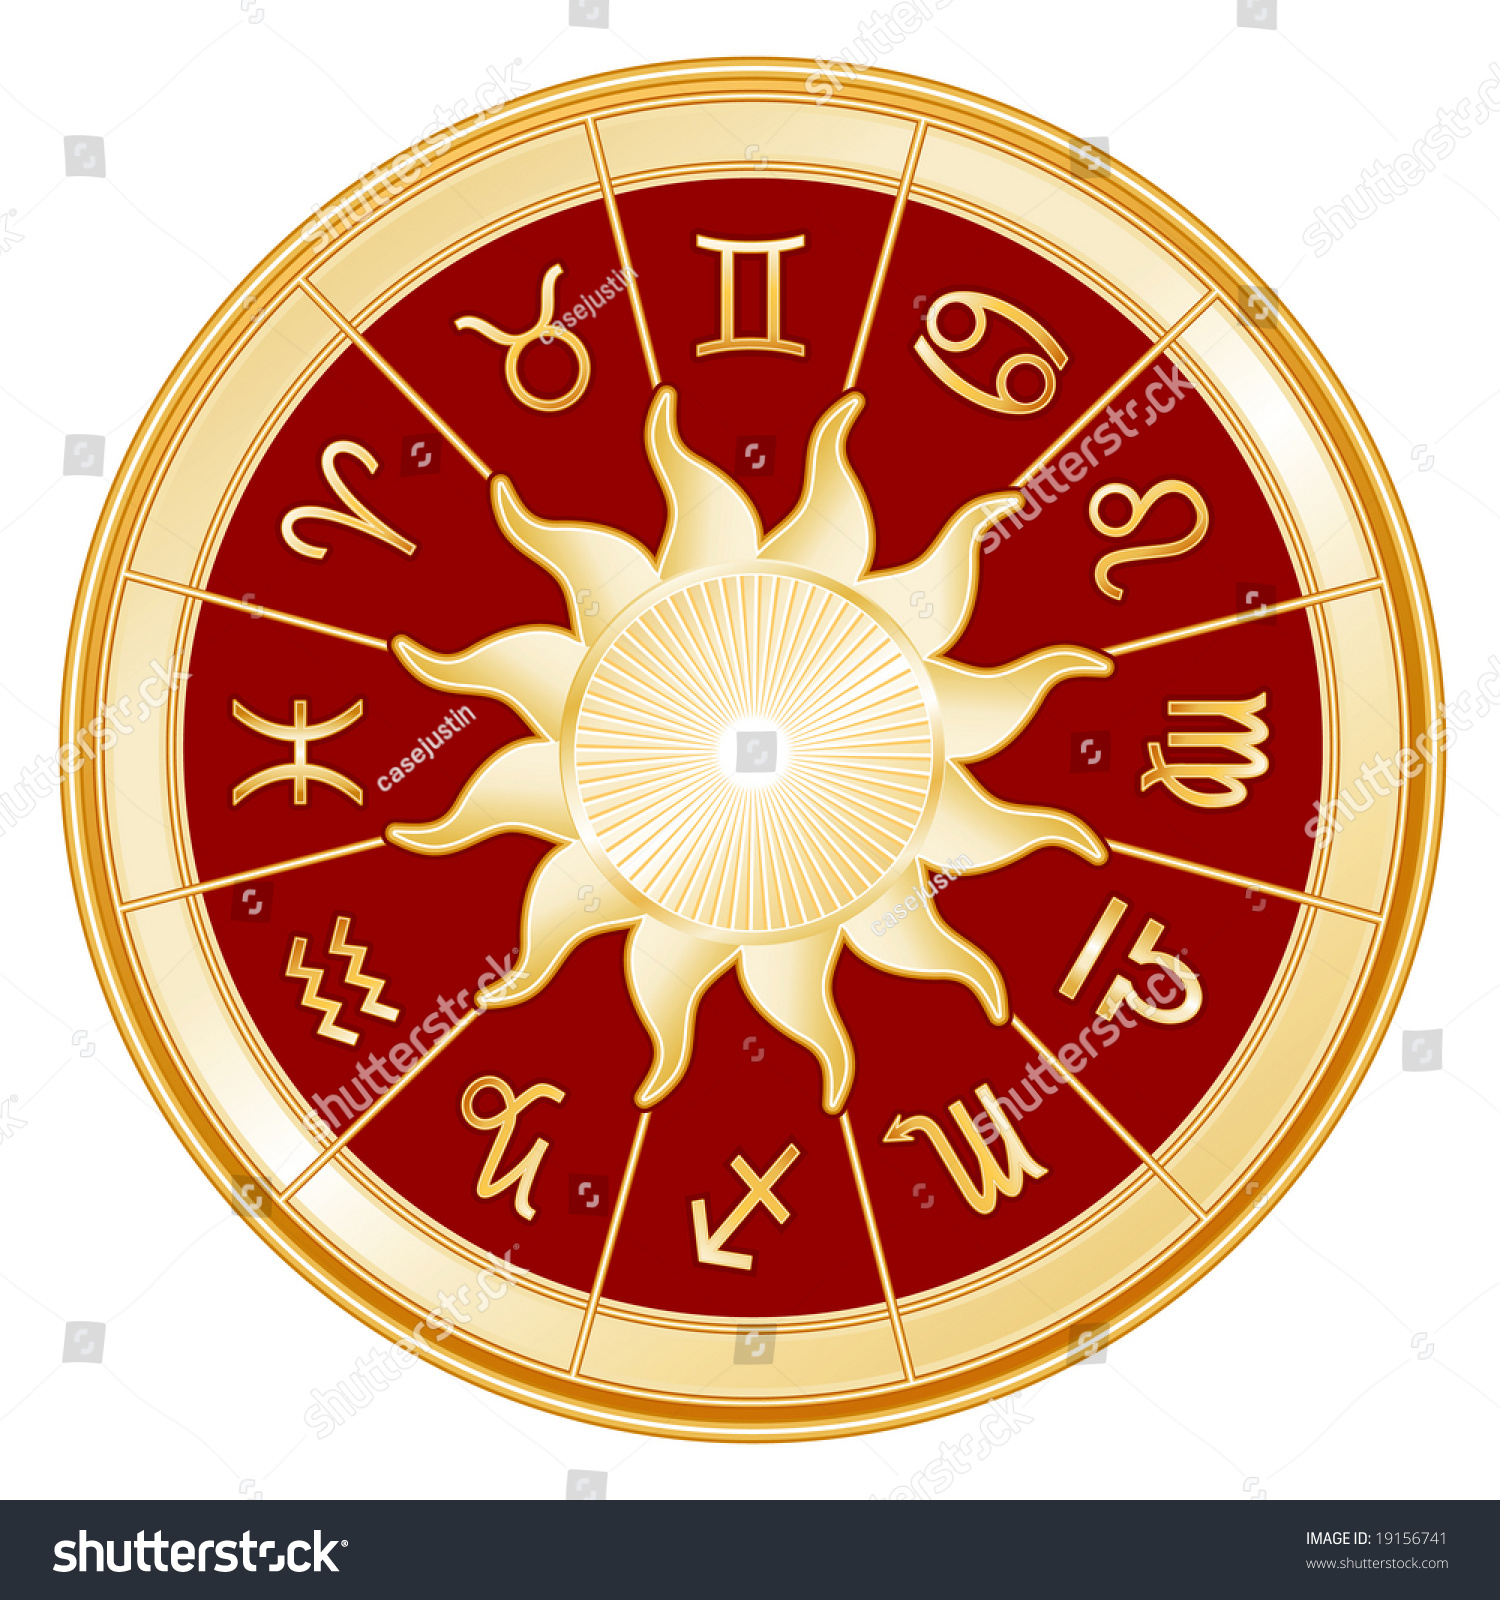 Red Libra Horoscope Signs Zodiac 12 Astrology Symbols Stock